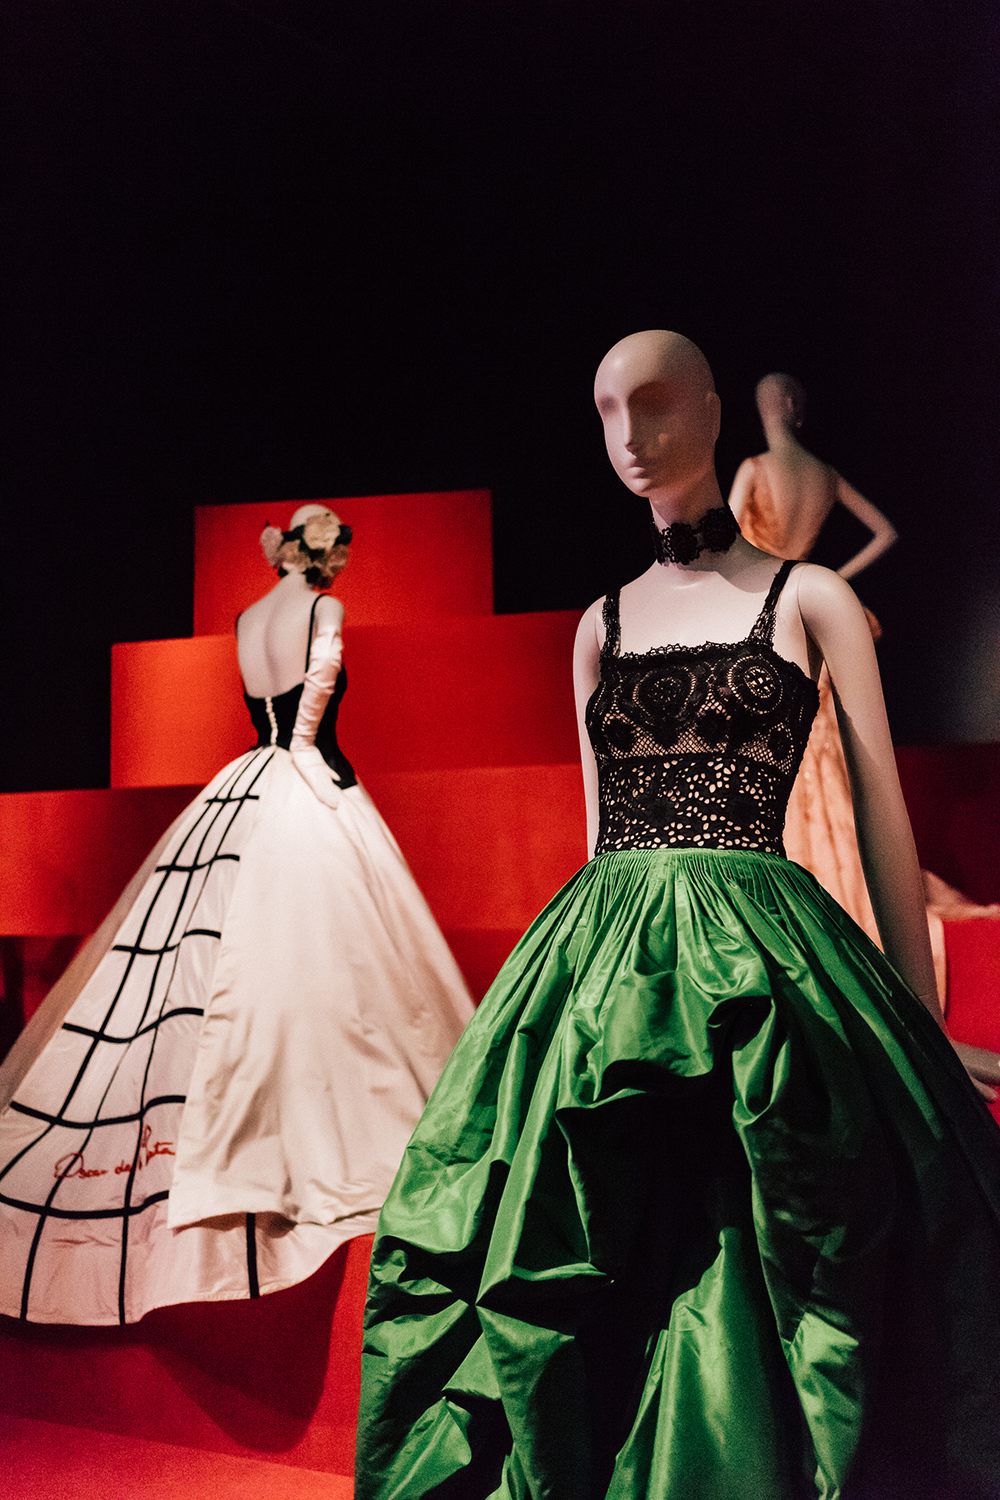 On the left, is a gown worn by Sarah Jessica Parker to MET's Gala in 2014